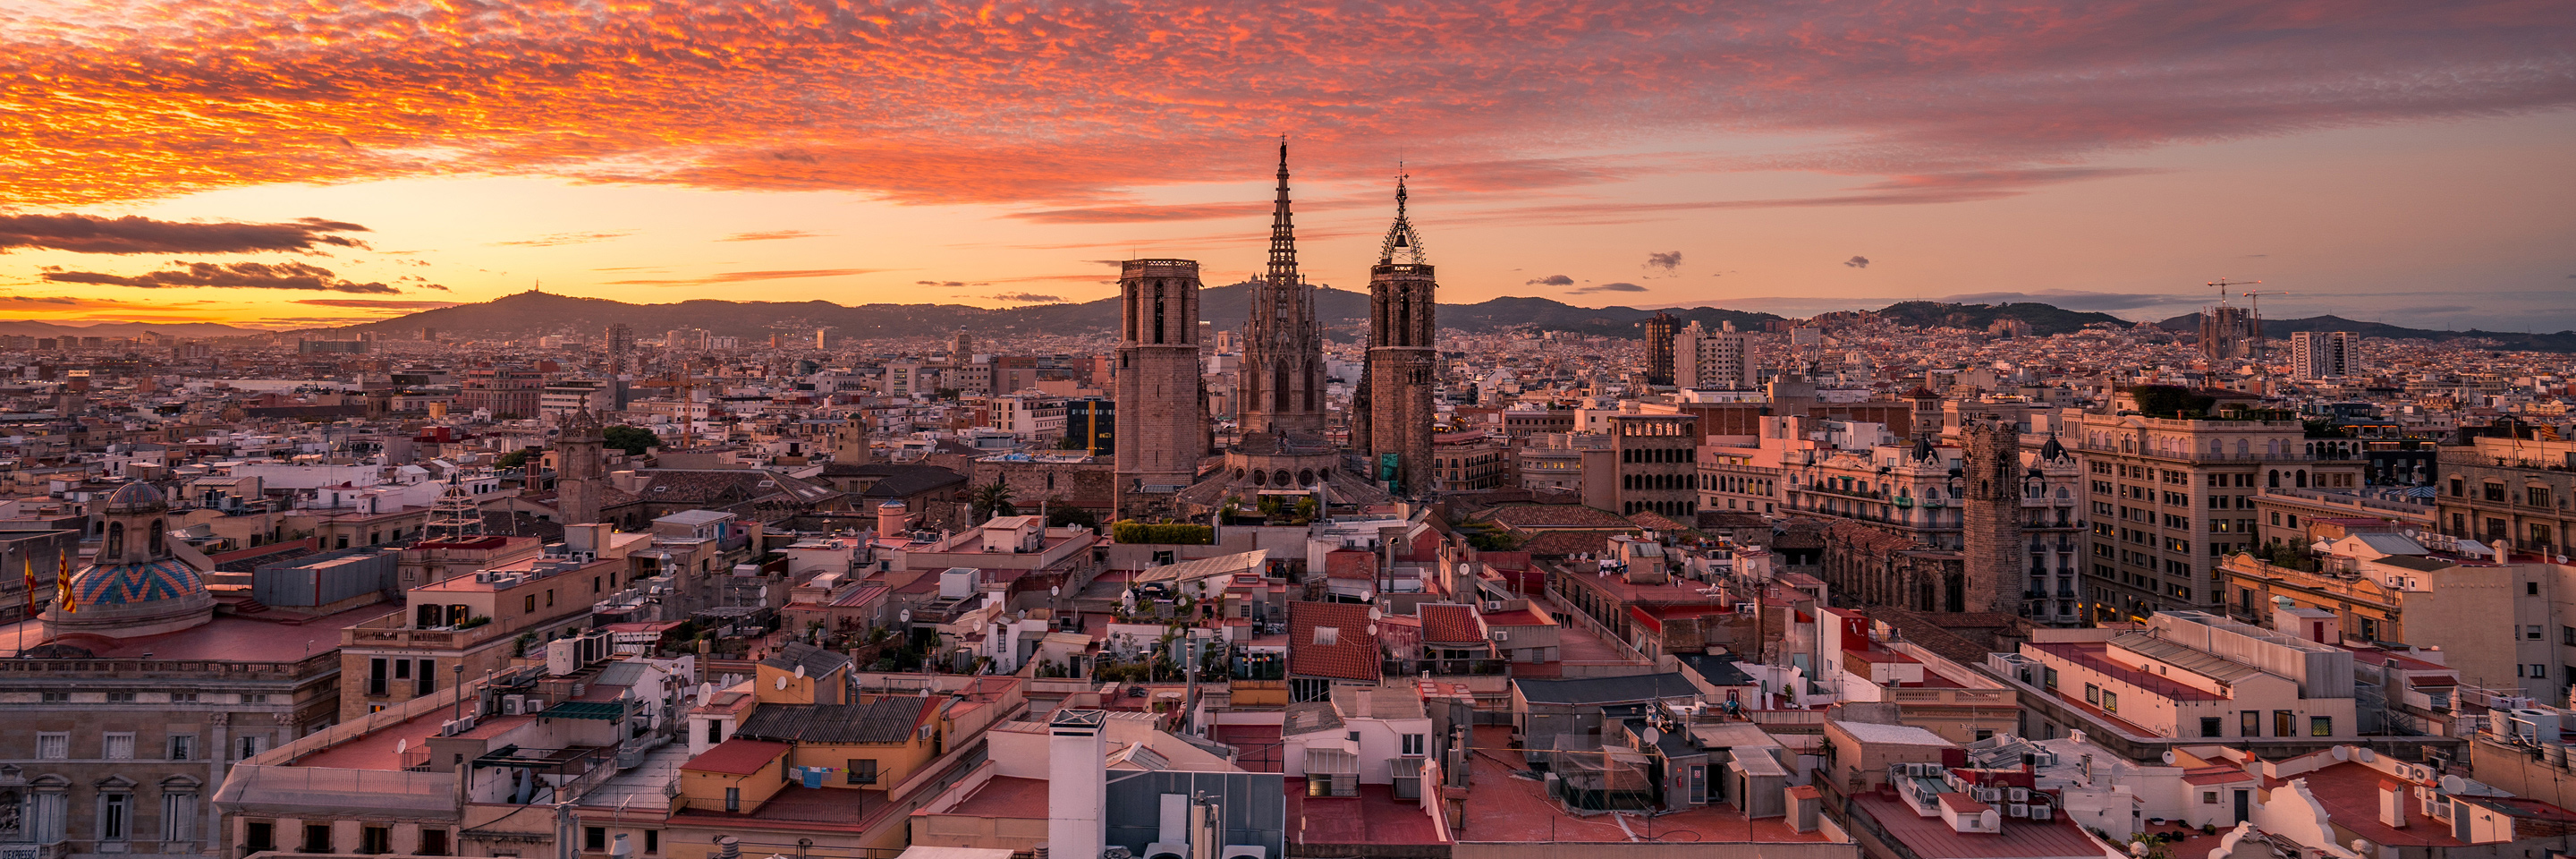 A Culinary Experience on Rhine & Rhône Revealed with 2 Nights in Nice & 3 Nights in Barcelona (Southbound)